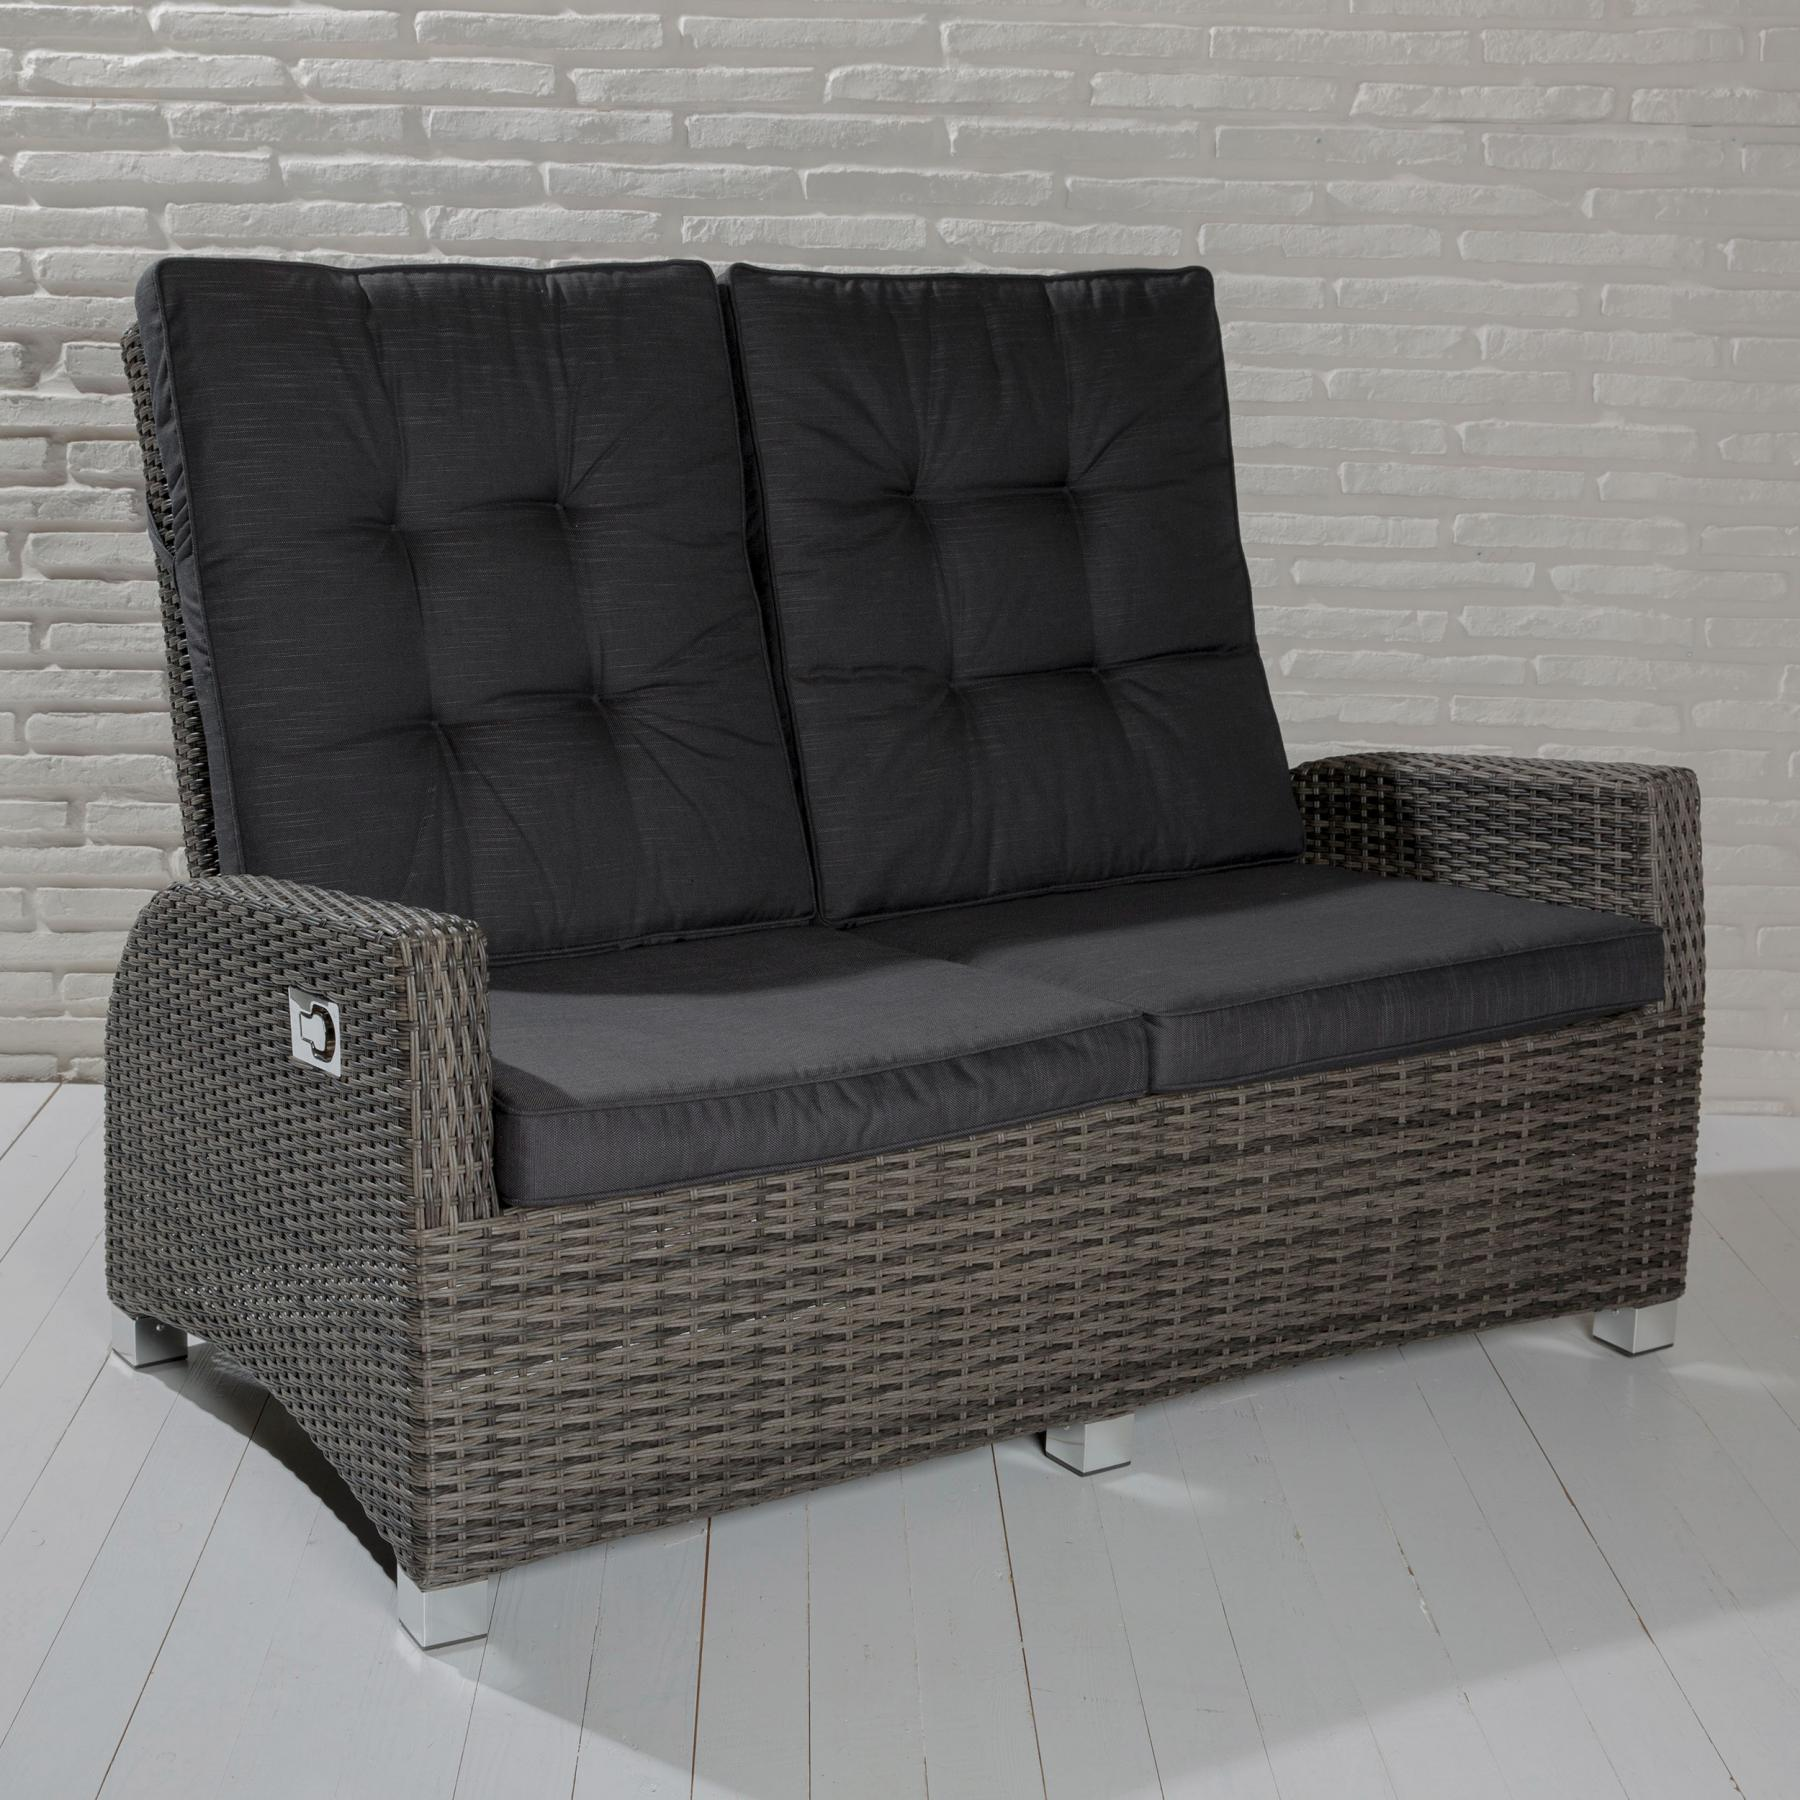 2 sitzer gartensofa barcelona grau mix loungesofa sofa gartenm bel living sofa polyrattan. Black Bedroom Furniture Sets. Home Design Ideas